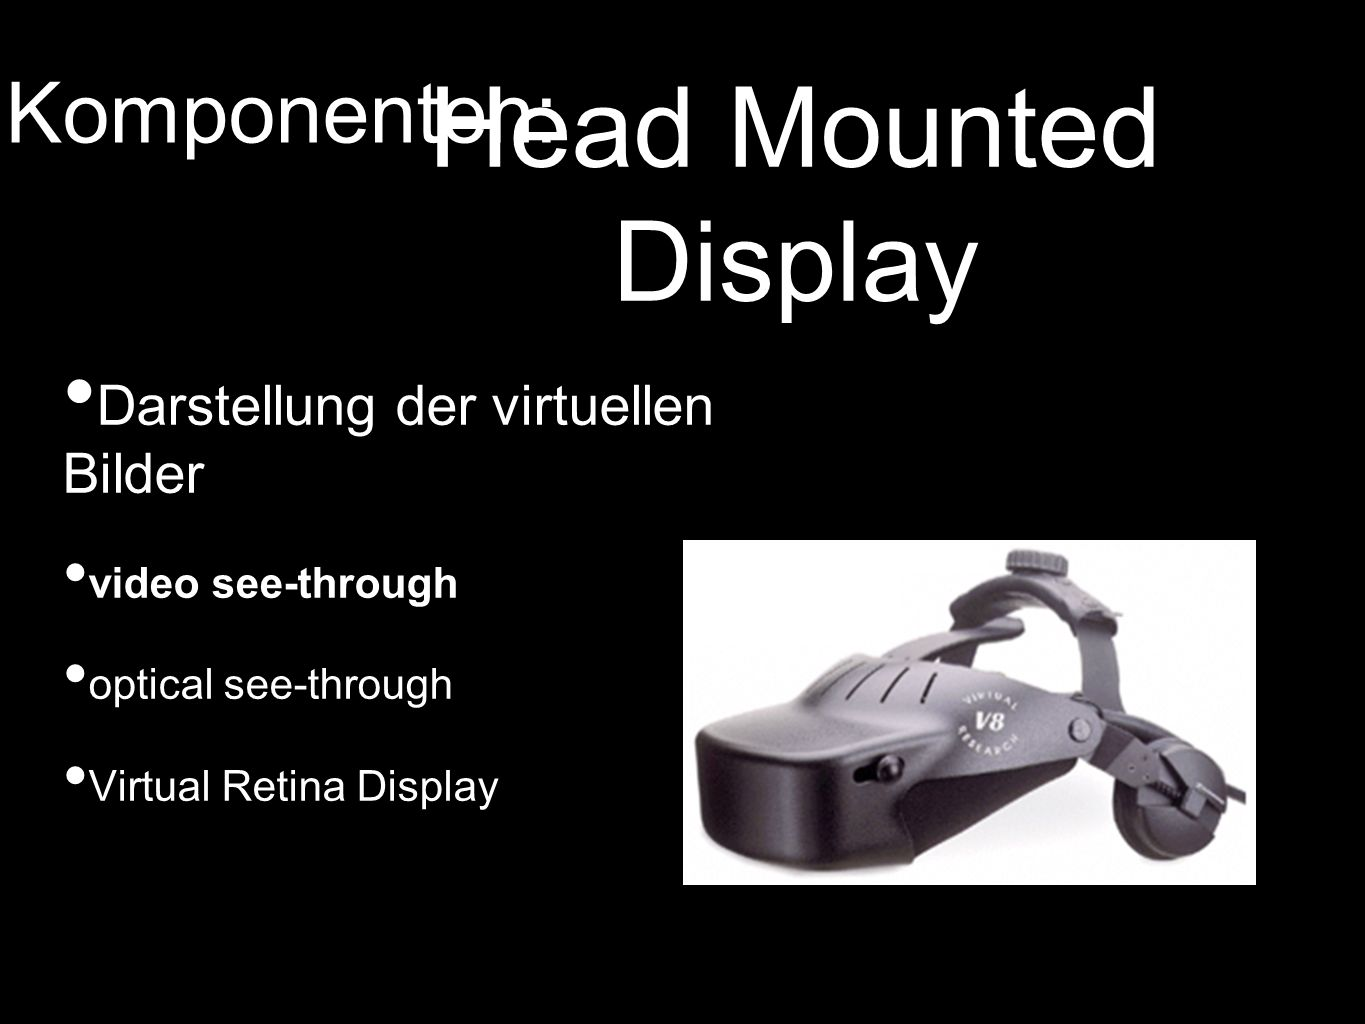 Head Mounted Display Komponenten: Darstellung der virtuellen Bilder